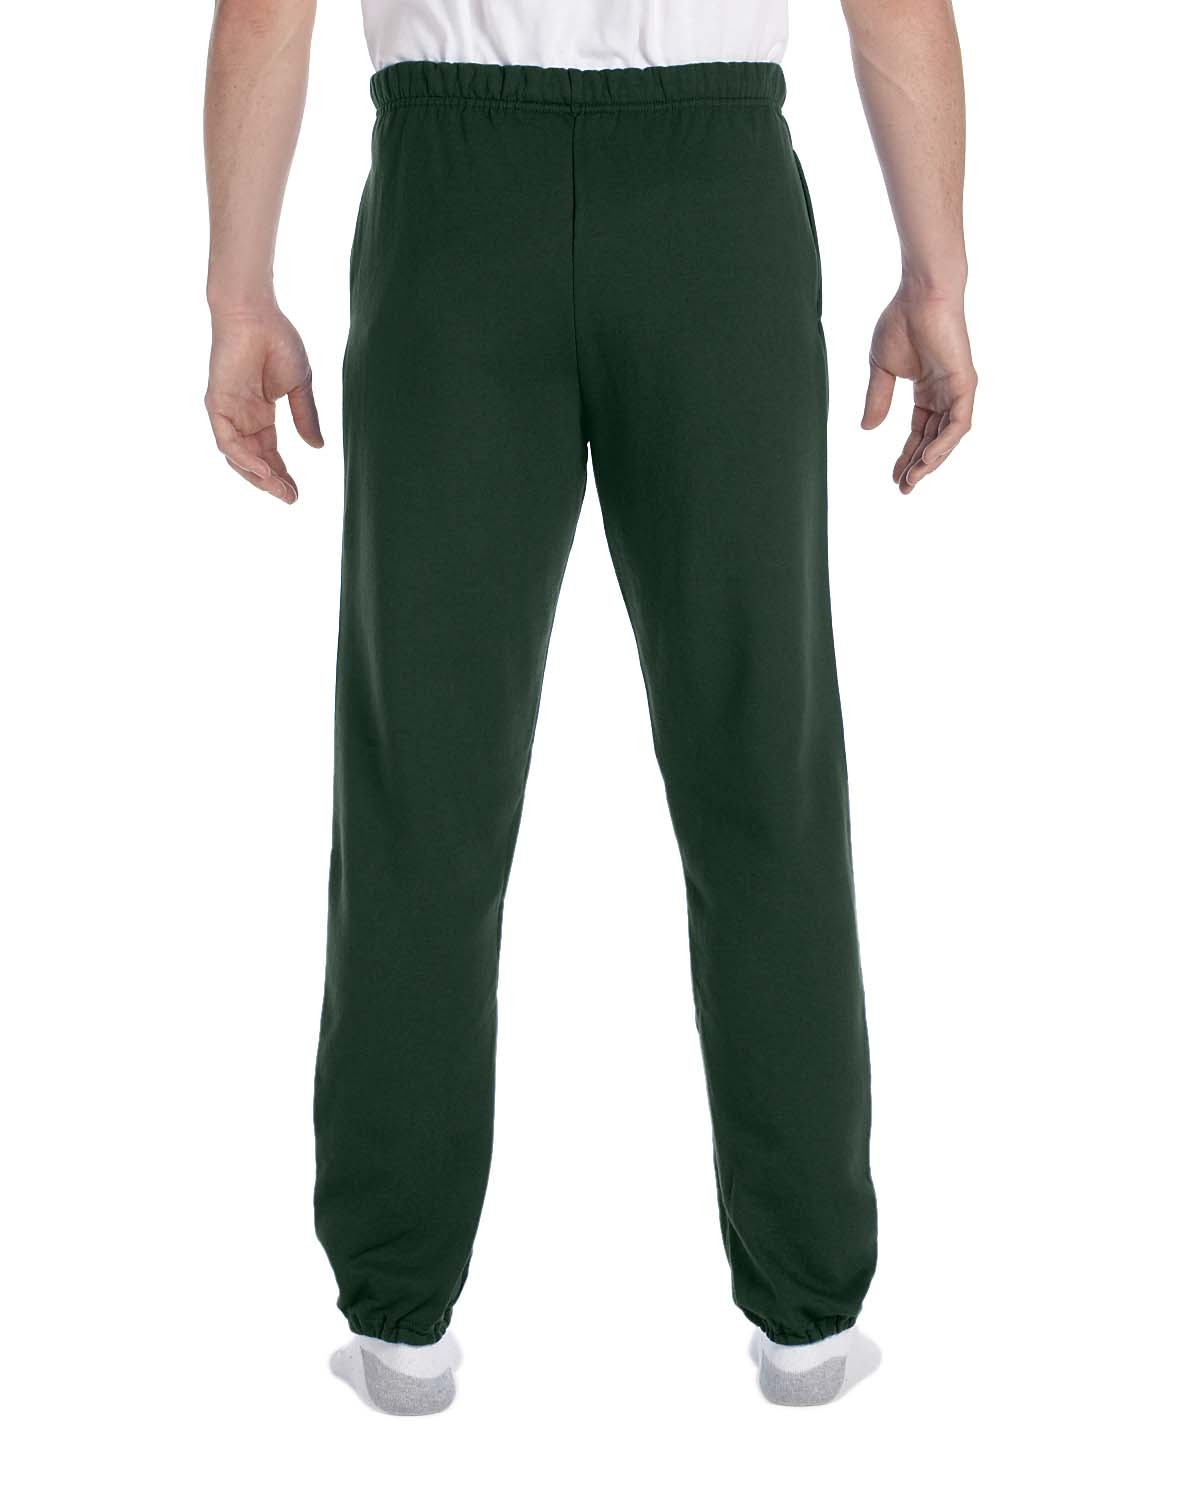 4850P Jerzees FOREST GREEN